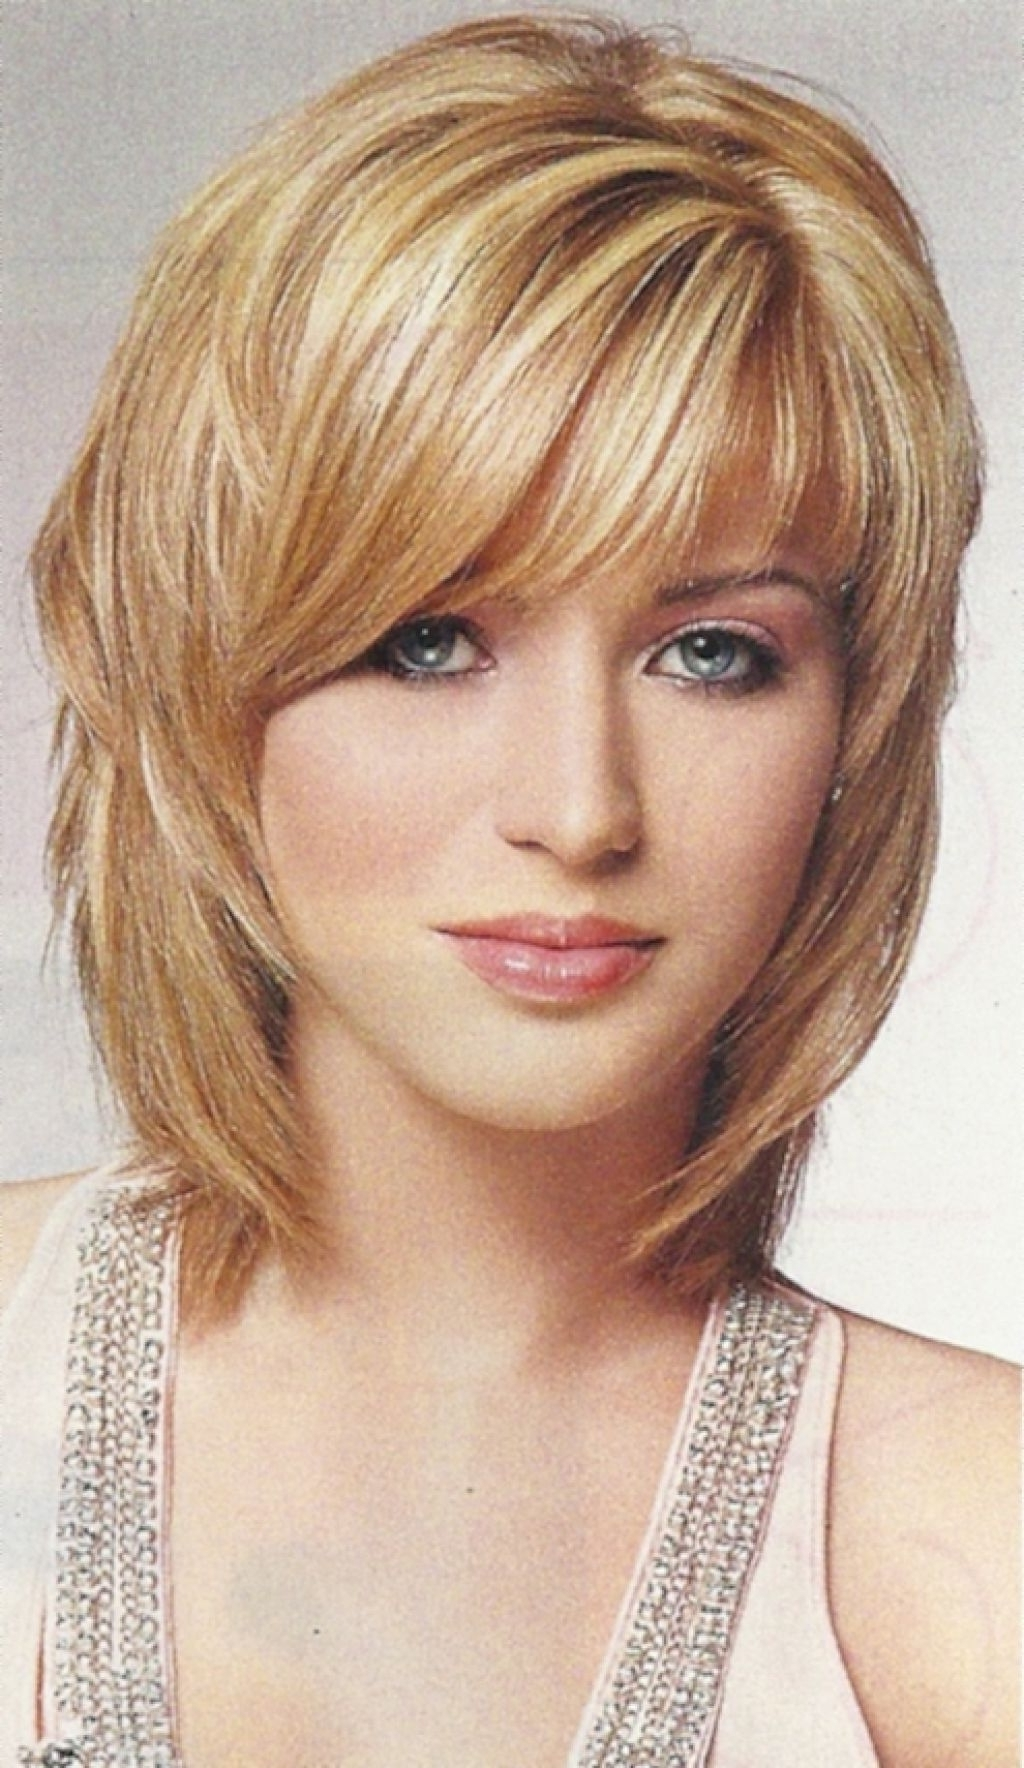 Medium Long Shaggy Hairstyle Medium Shag Hairstyles Women Pertaining To Fashionable Shaggy Hairstyles For Oval Faces (View 9 of 15)